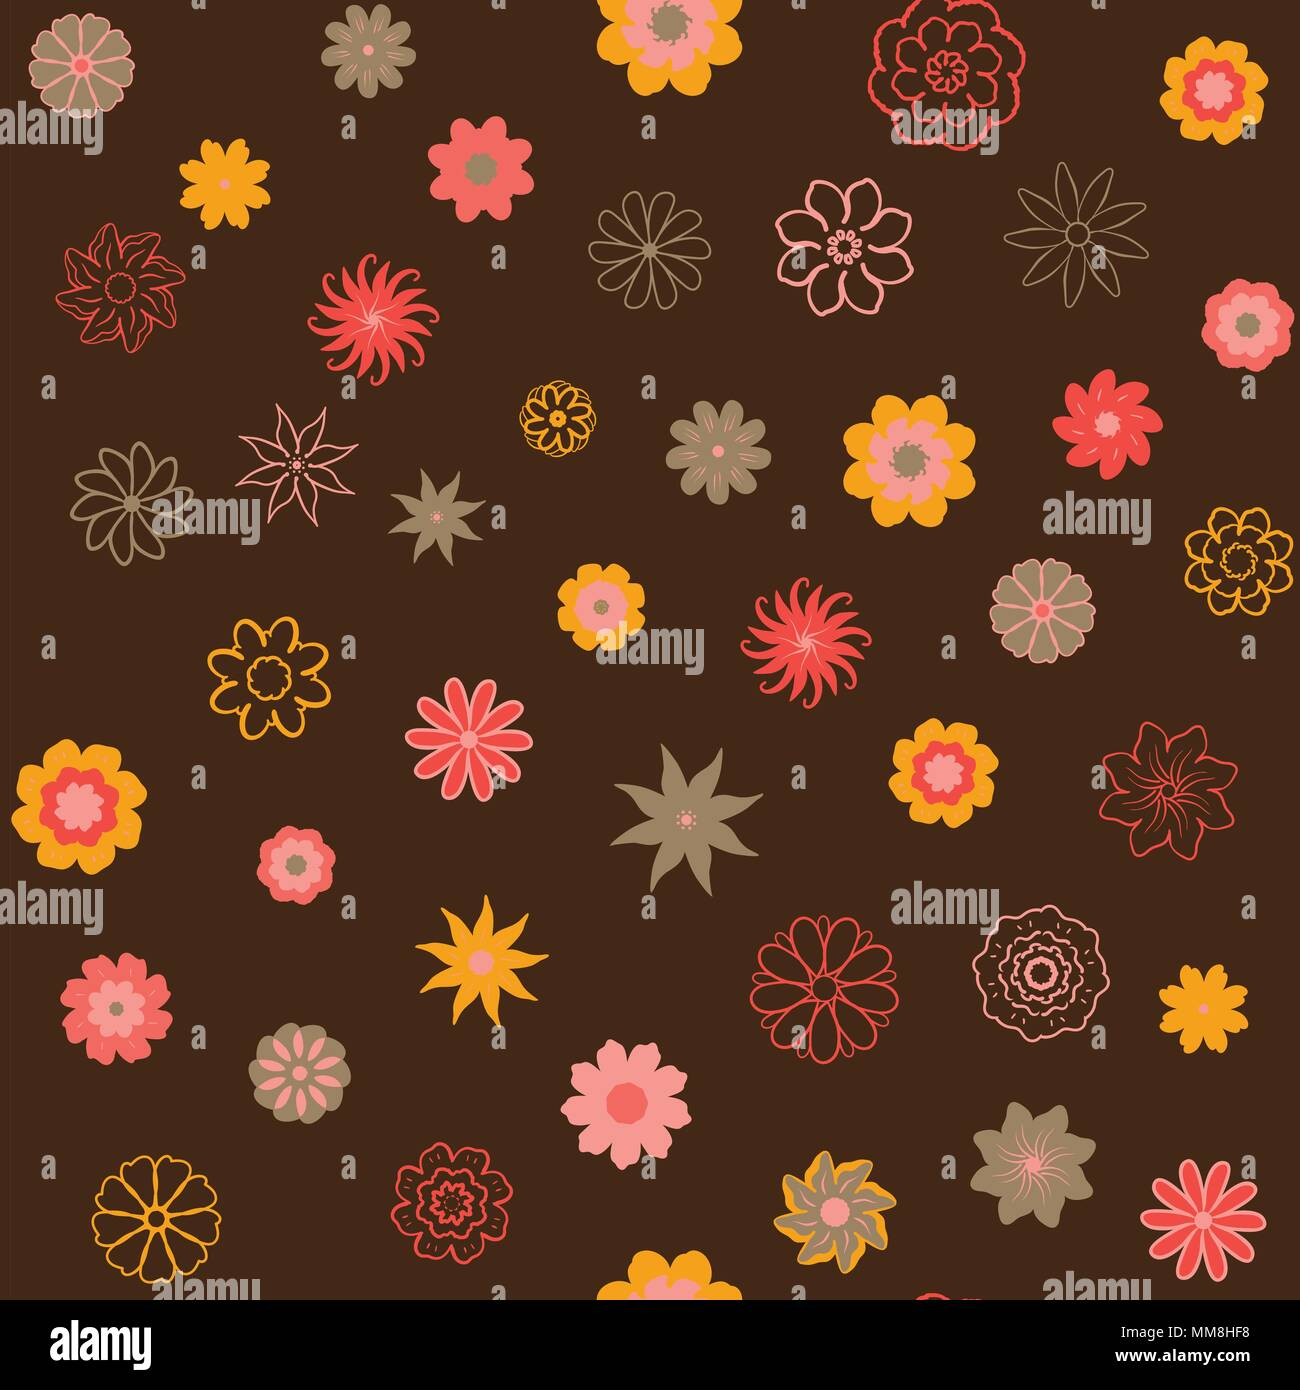 Retro Floral Wallpaper Small Flowers Stock Photos Retro Floral